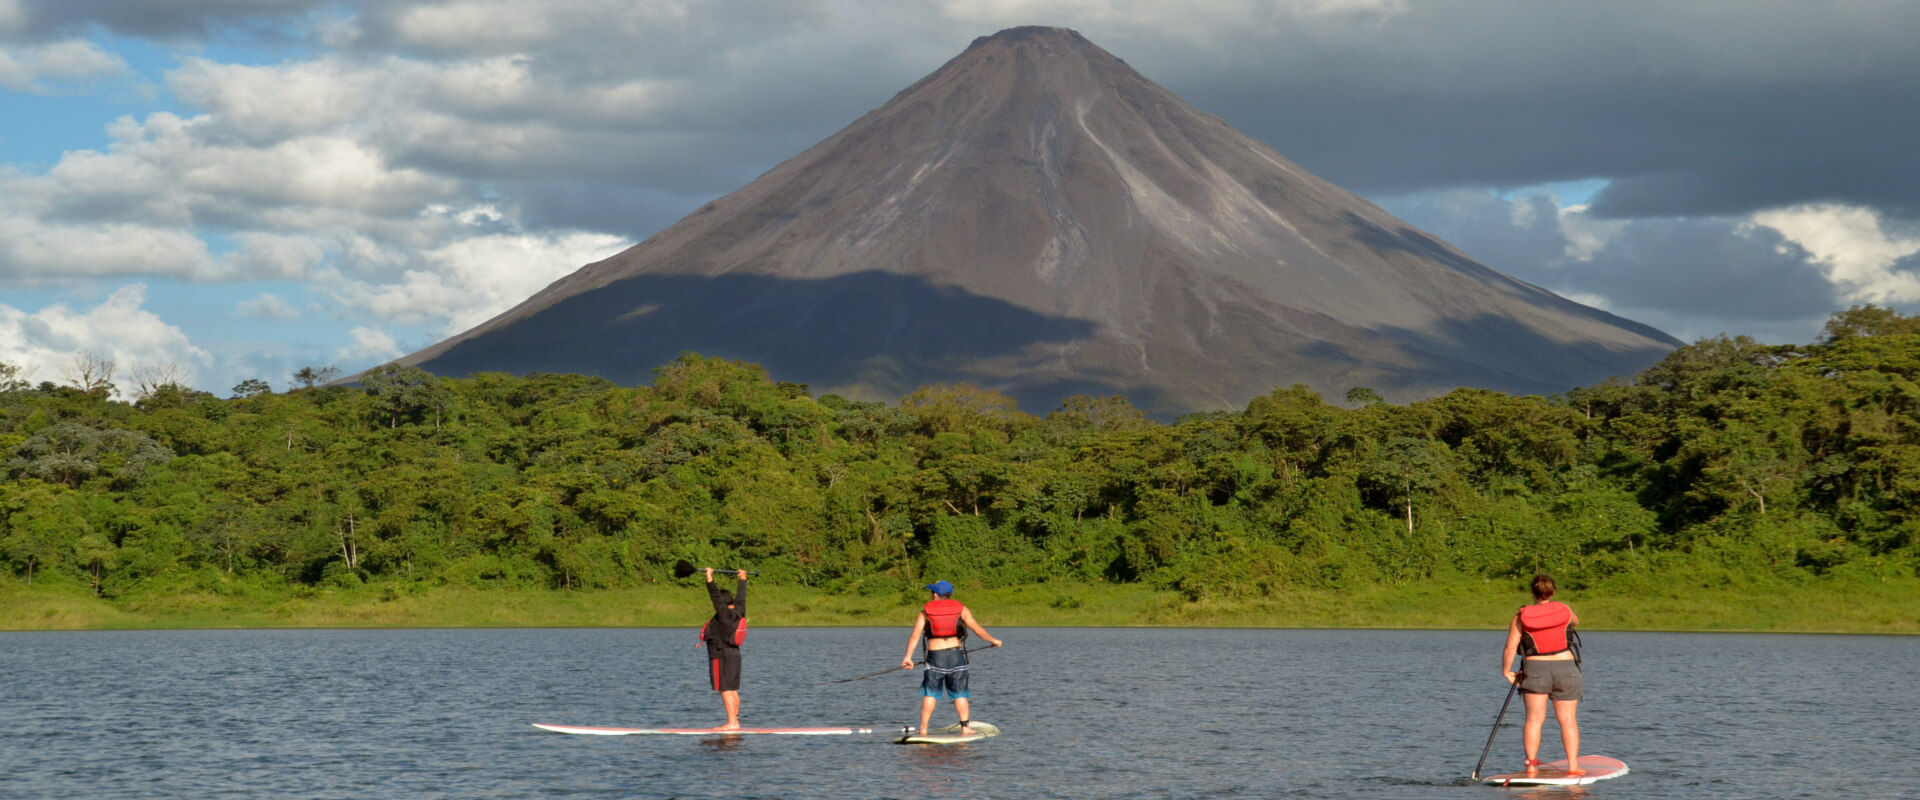 Stand Up Paddle on Lake Arenal | Costa Rica Jade Tours